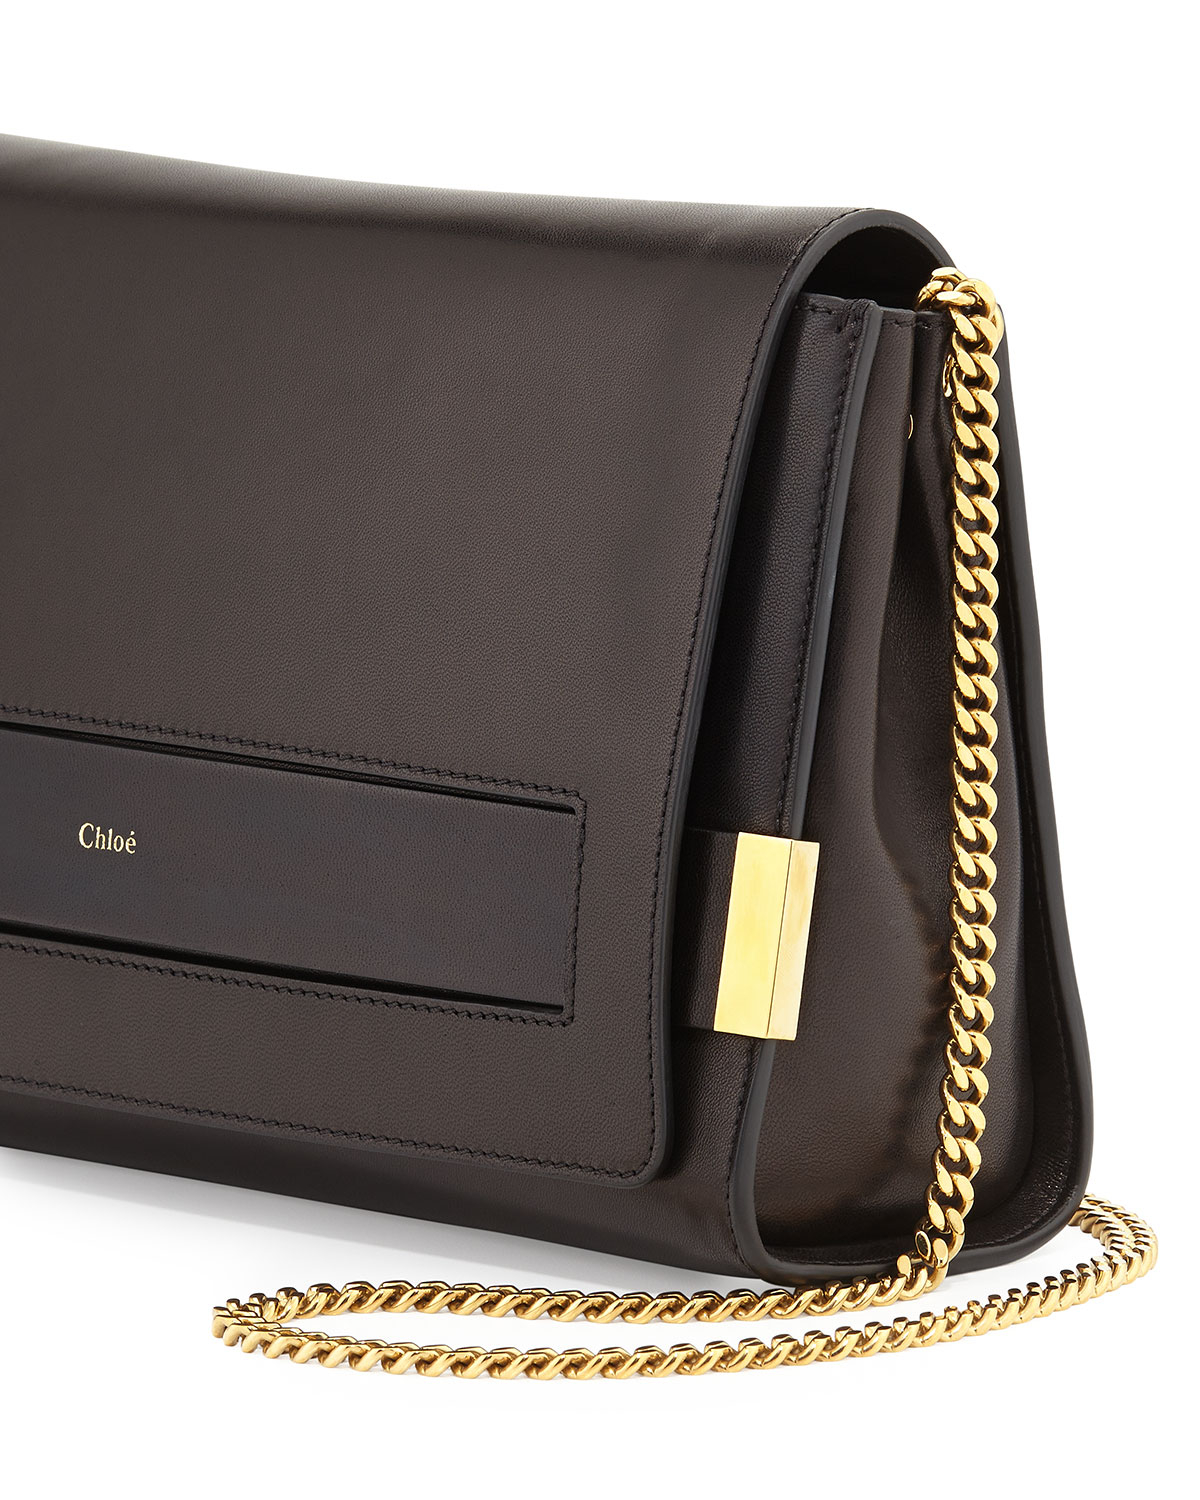 Lyst - Chloé Elle Large Clutch Bag With Chain Strap in Black 4df91974db7